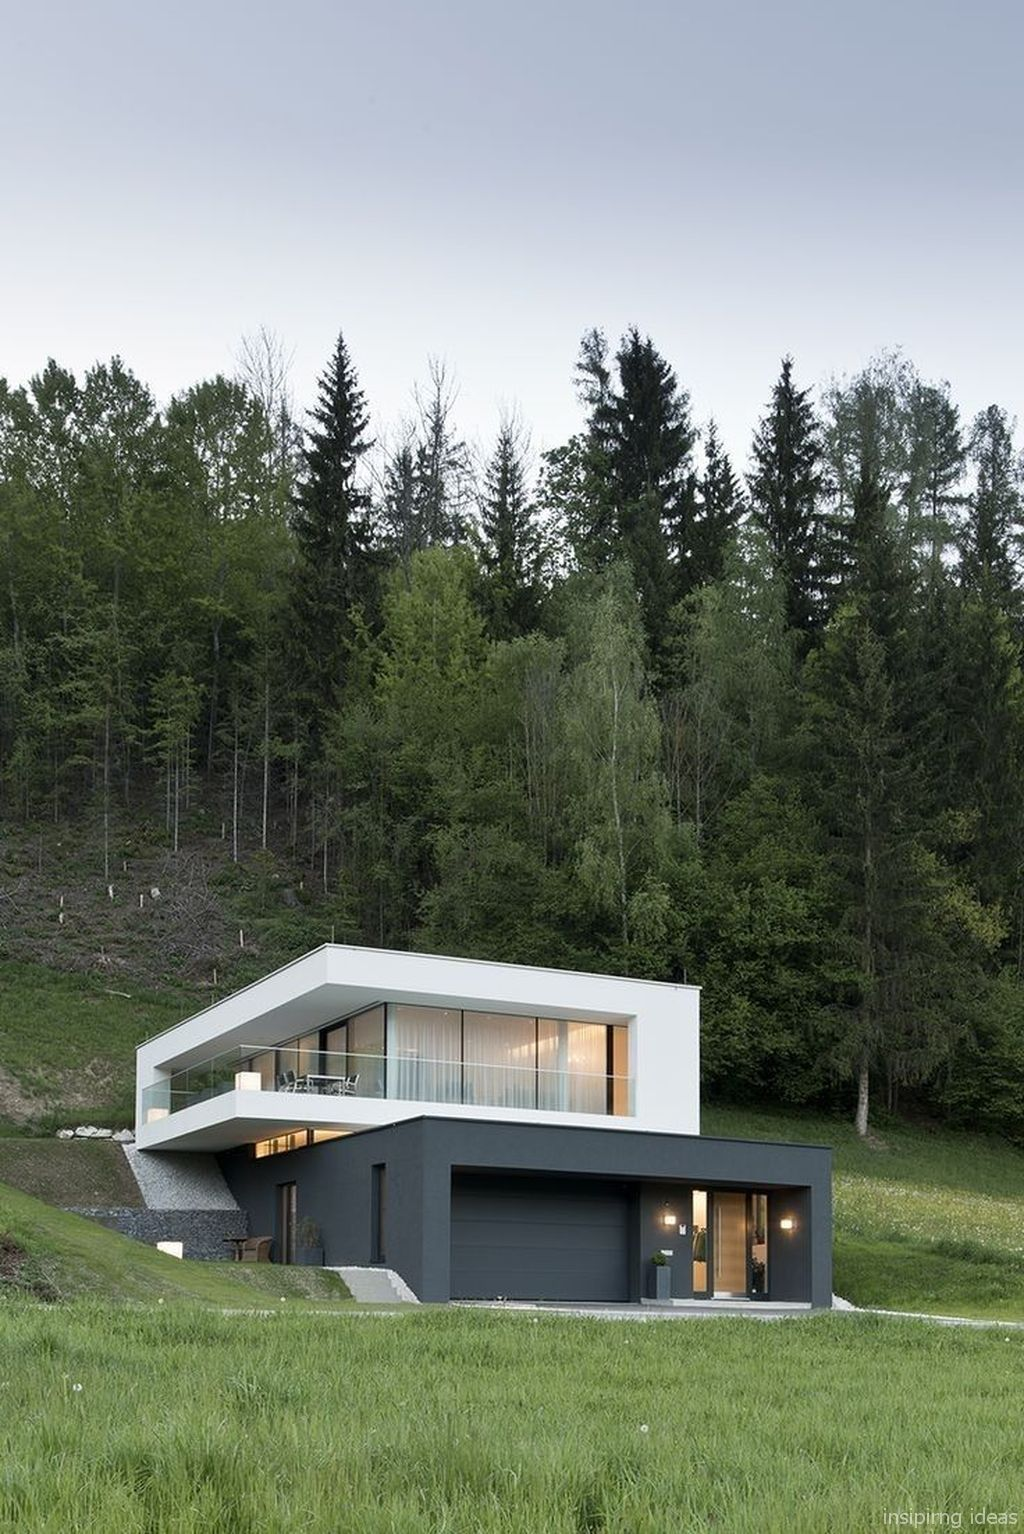 99 Modern Container House Design Ideas   Container house ... on